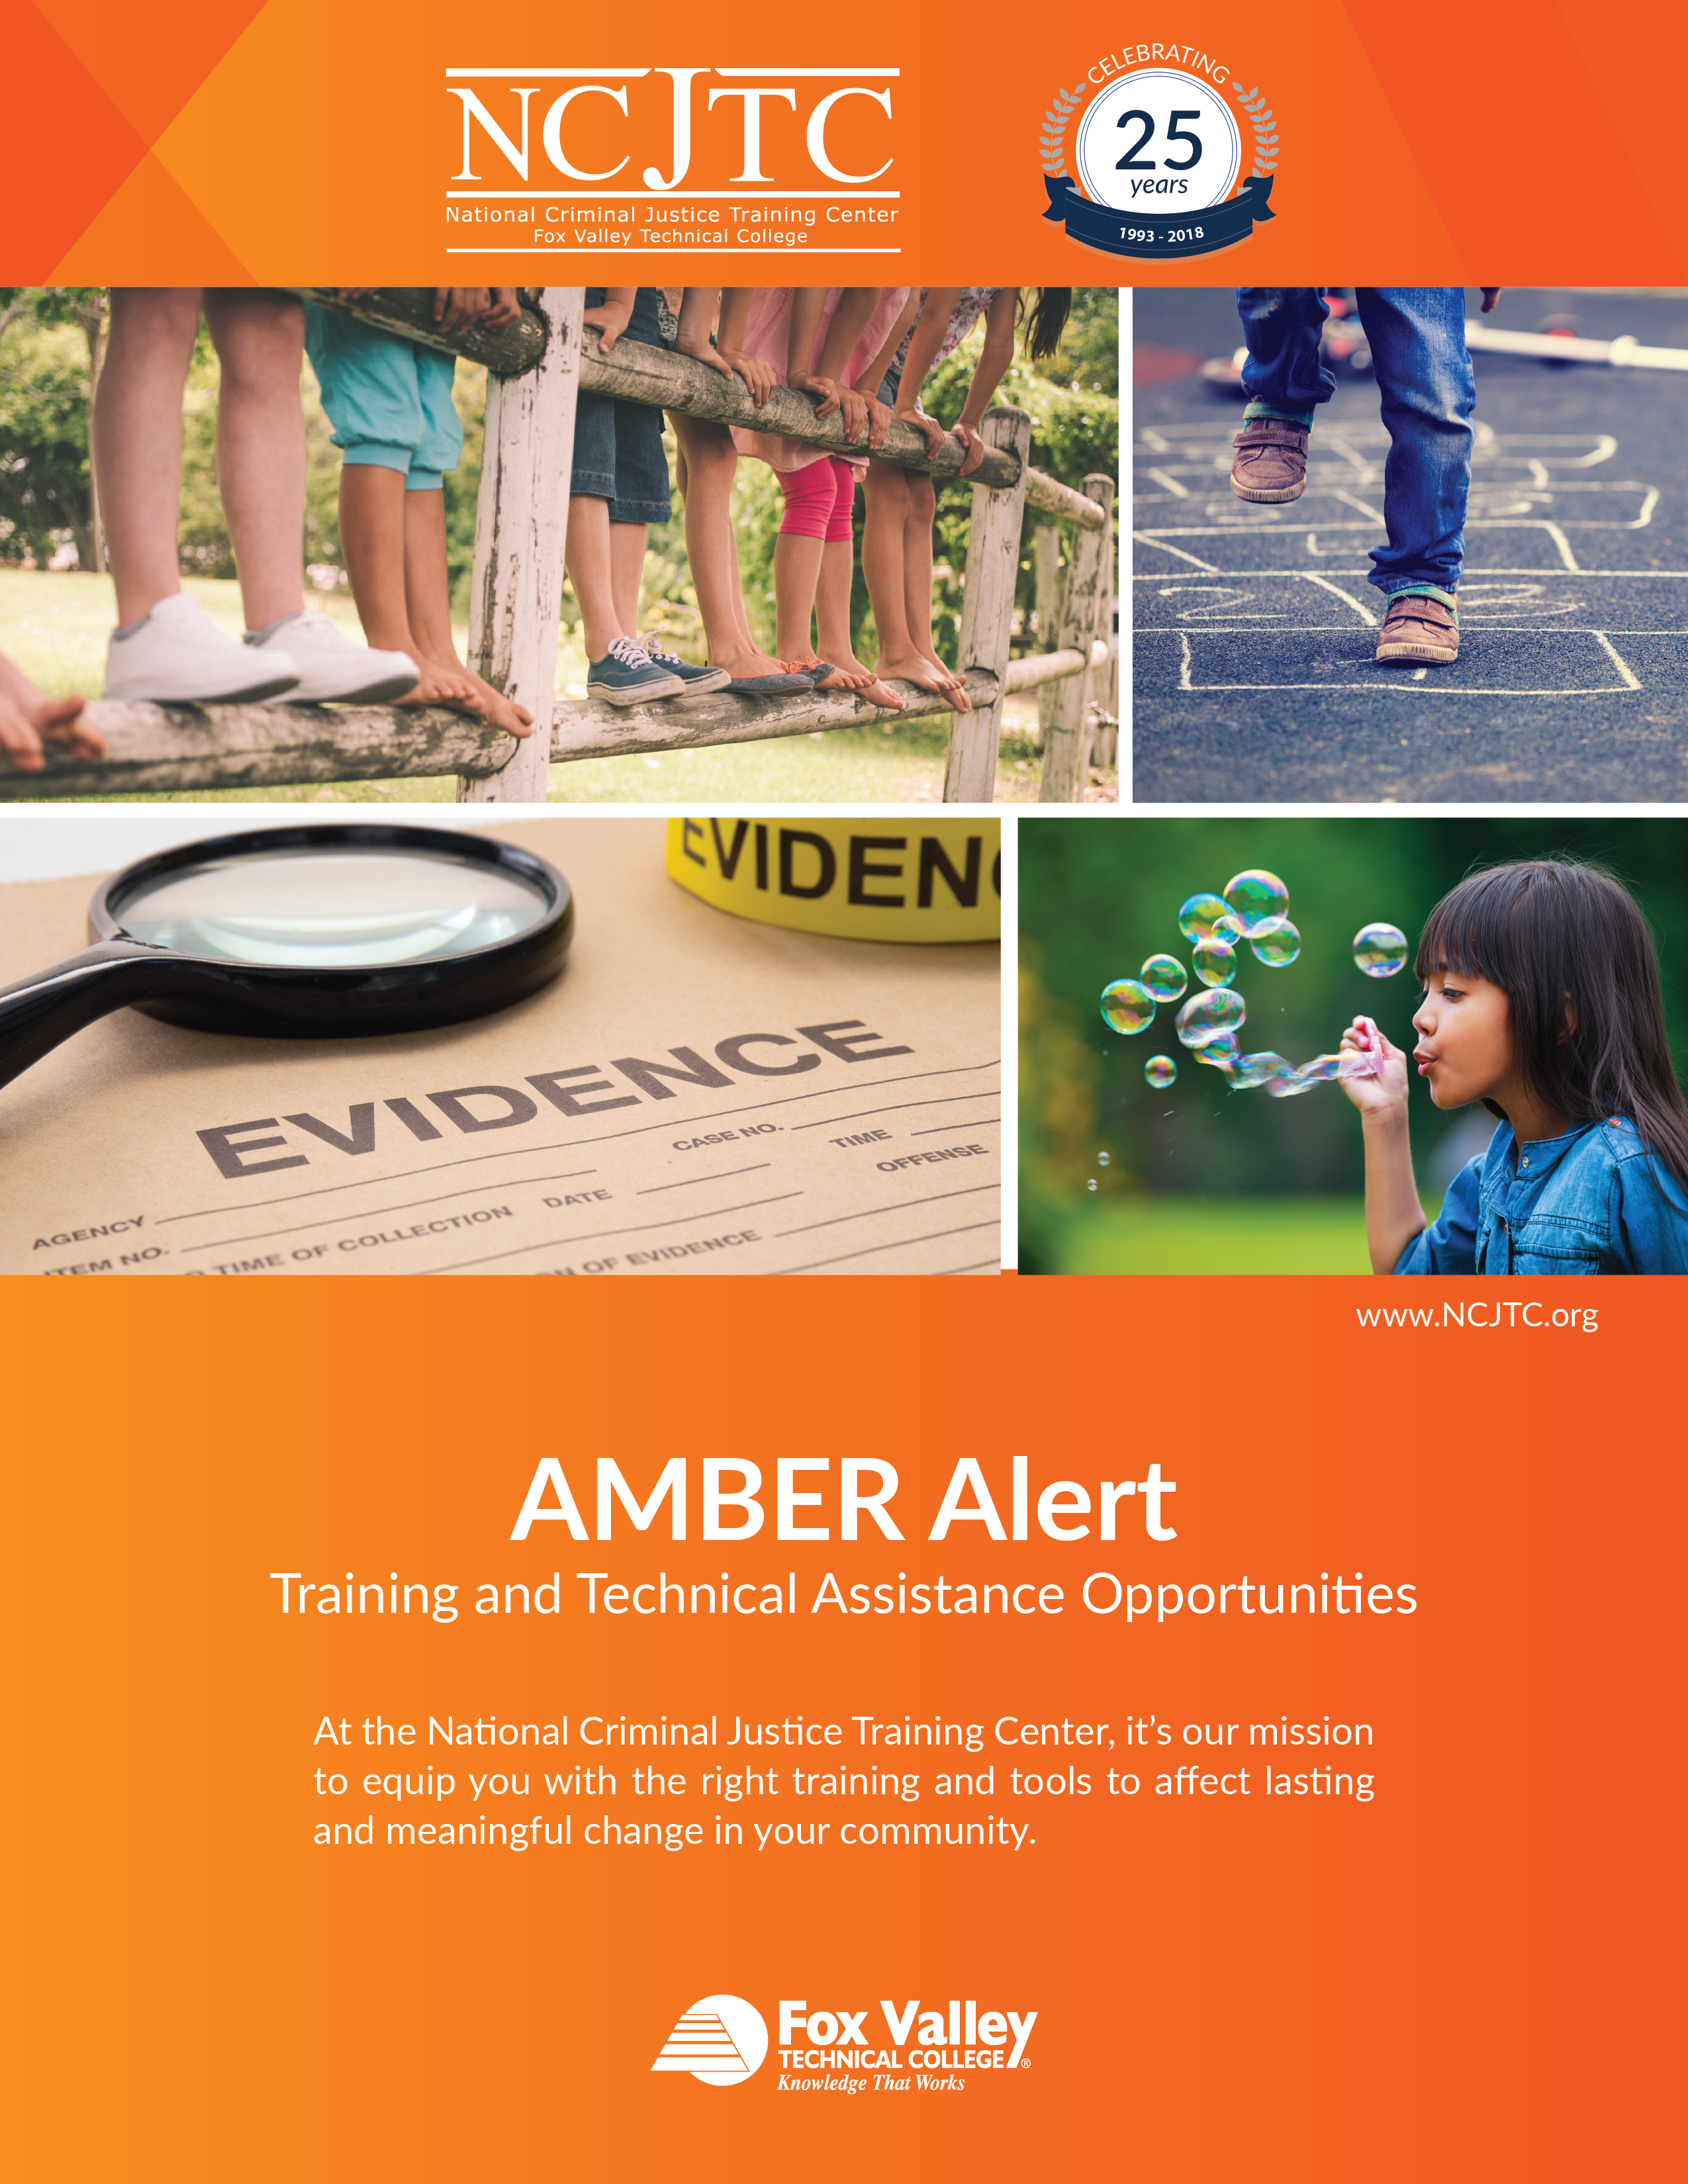 AMBER Alert Training and Technical Assistance Opportunities 2019